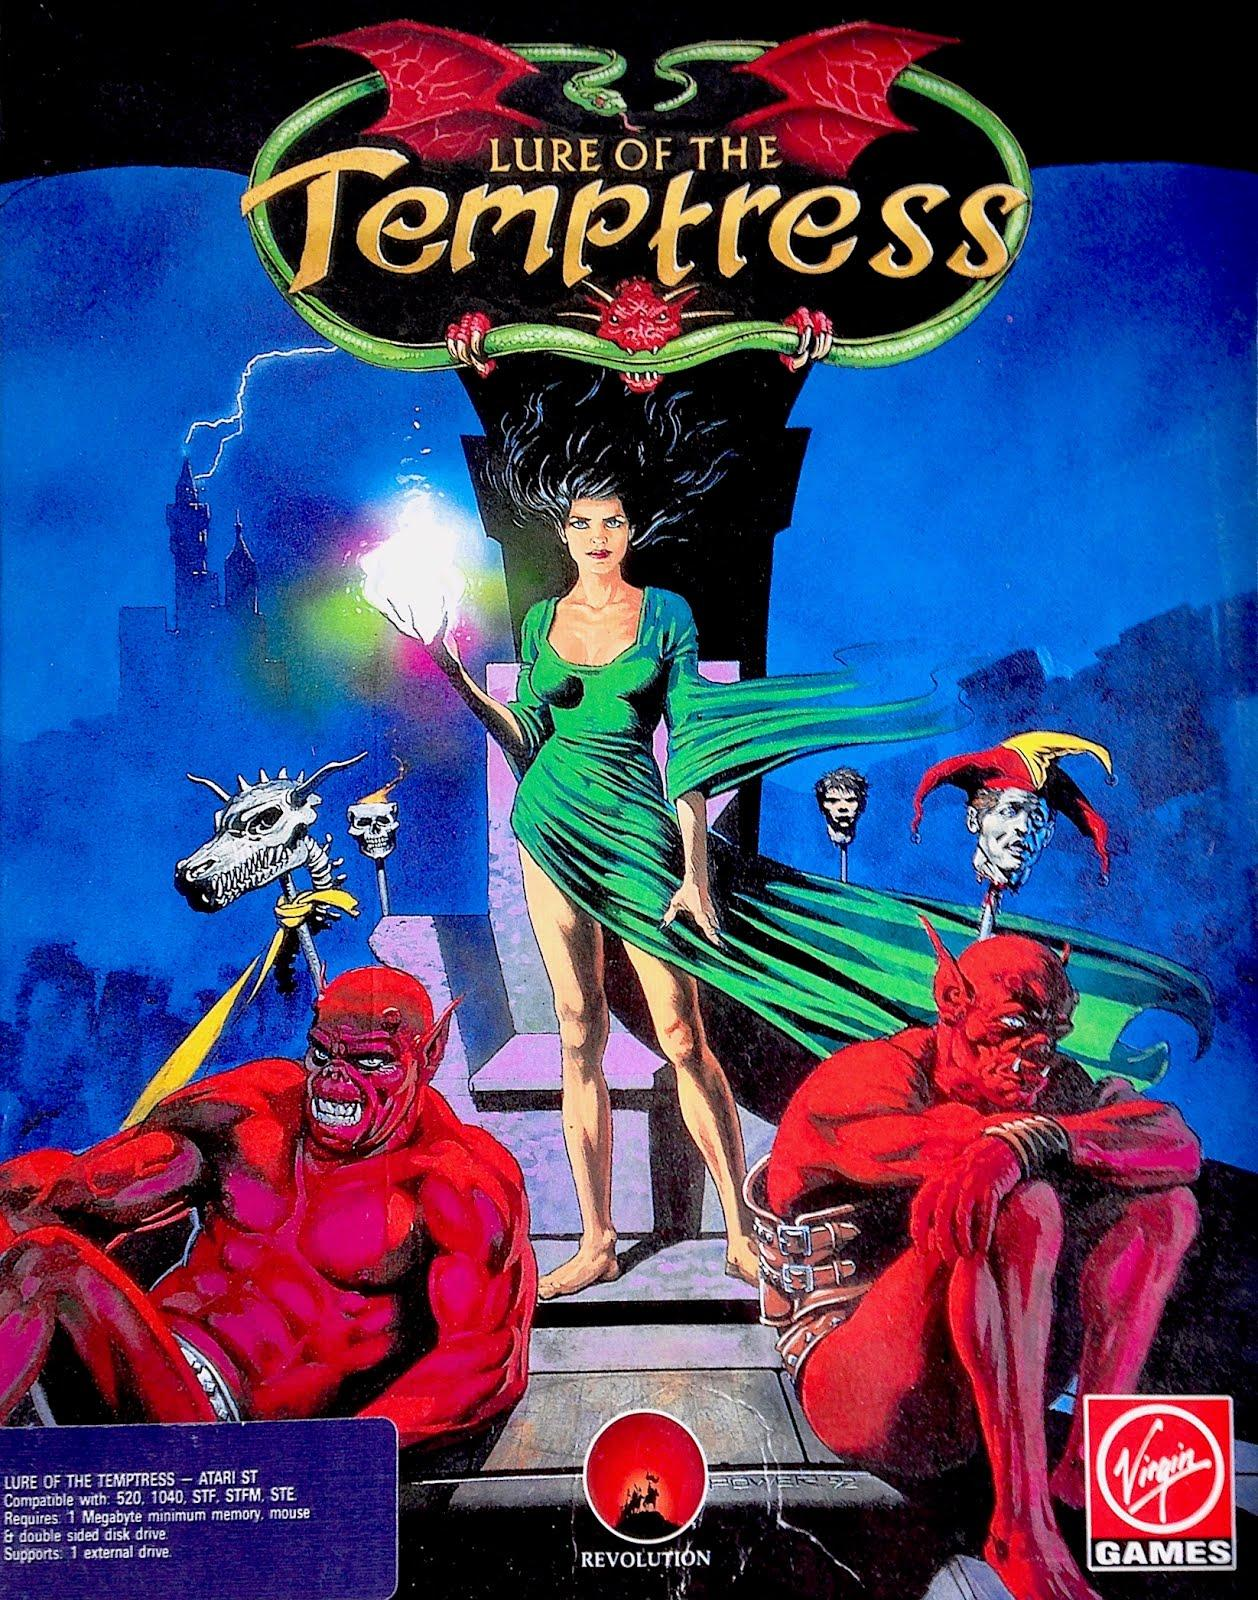 The Adventure Gamer: Game 88: Lure of the Temptress (1992